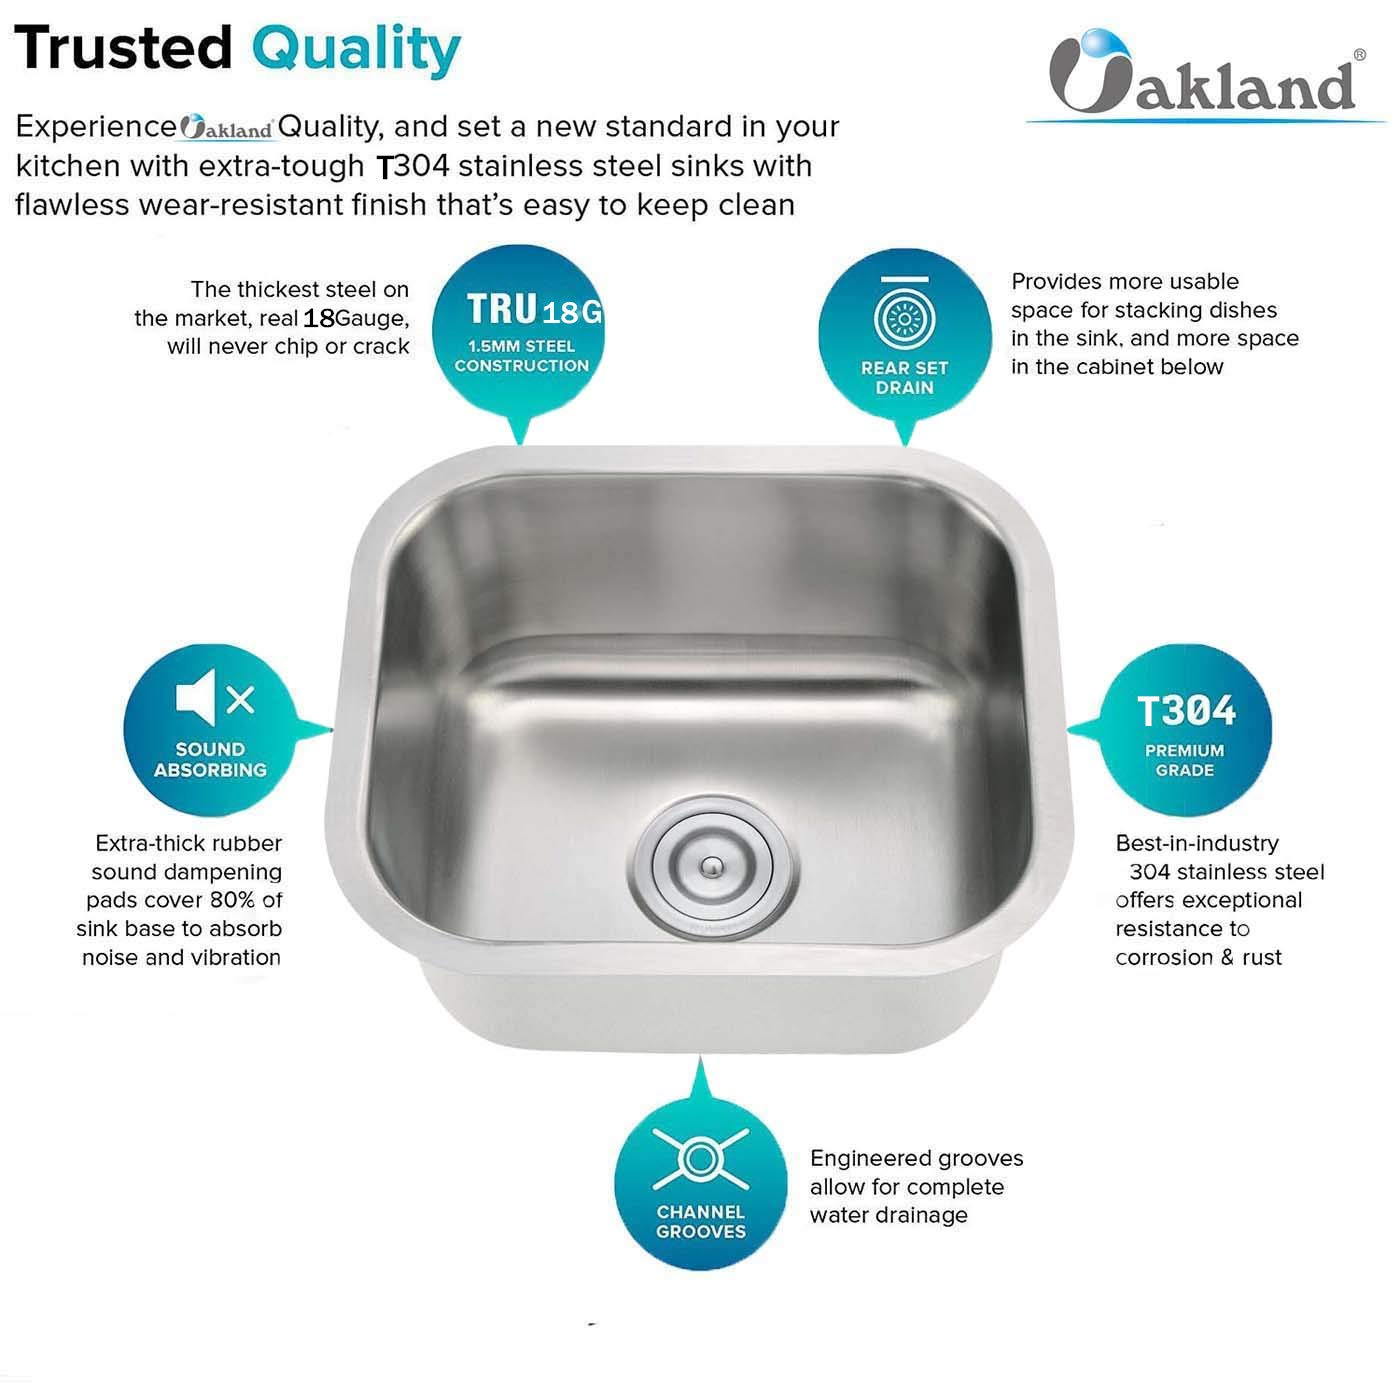 18-Gauge Undermount Single Bowl Stainless Steel Small Bar/Prep Sink 13''X13'' by Oakland (Image #1)